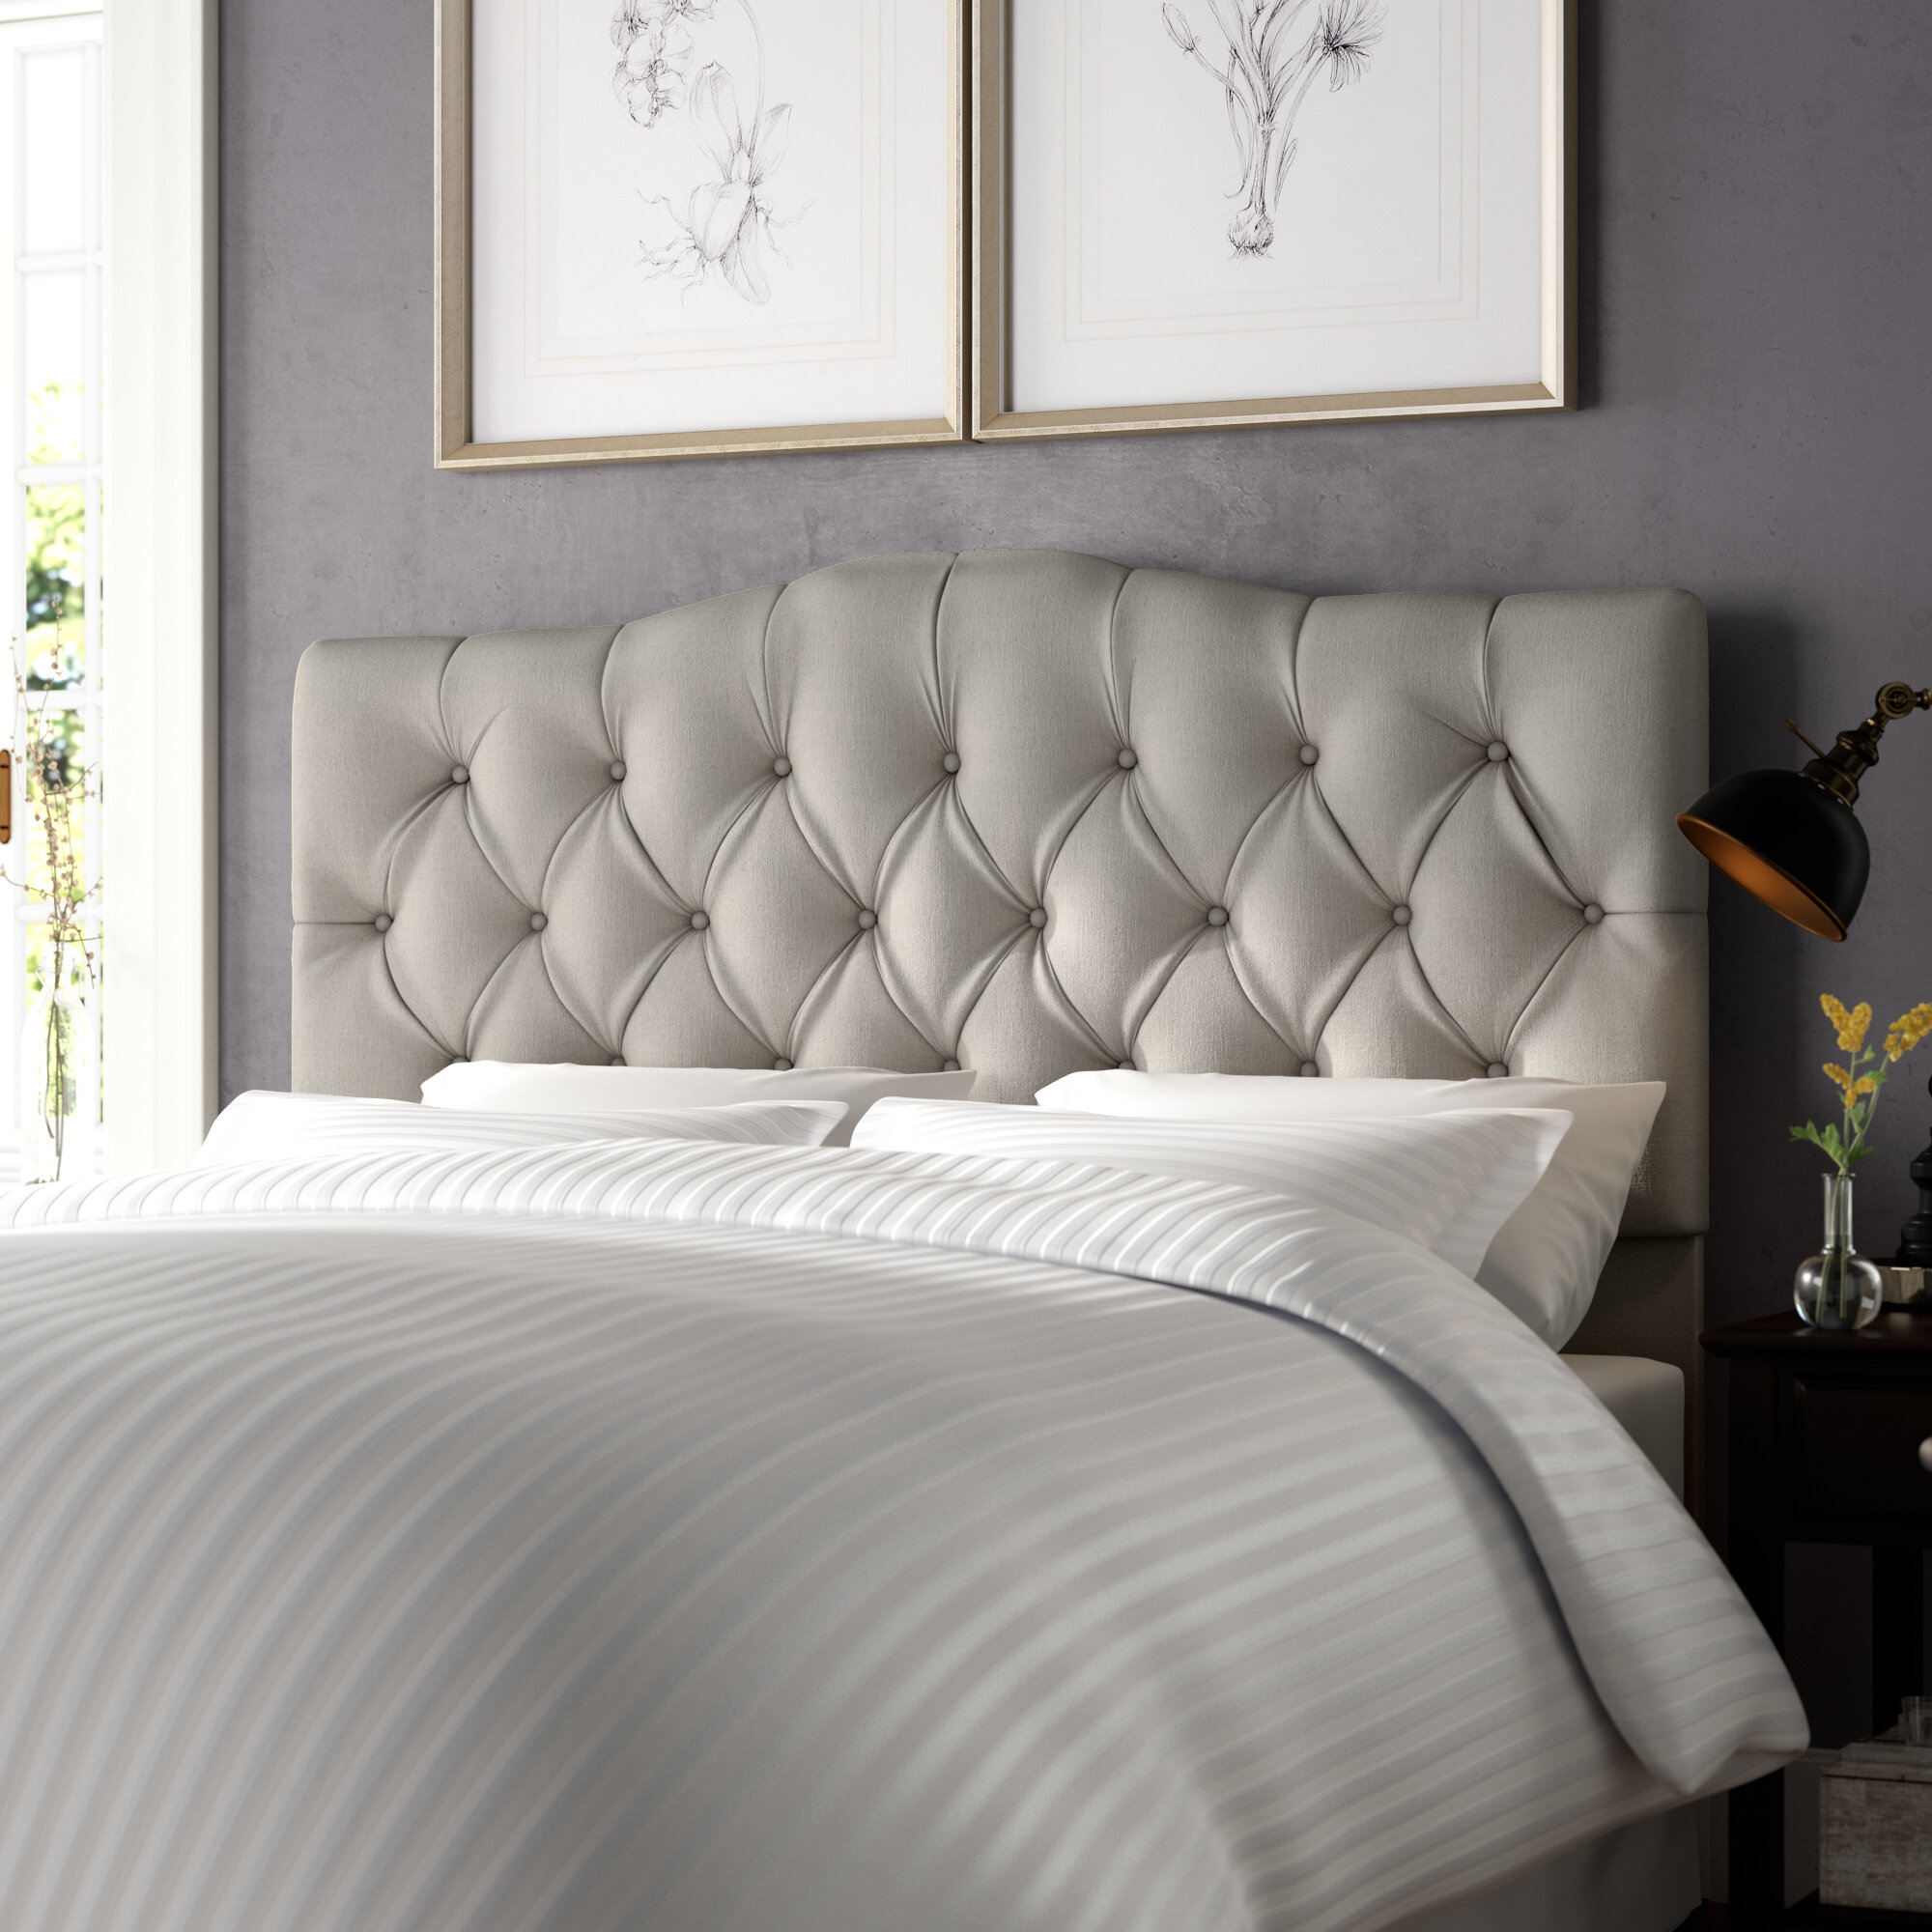 grey gallery linen a headboard headboards dark view bedroom for luxurious in